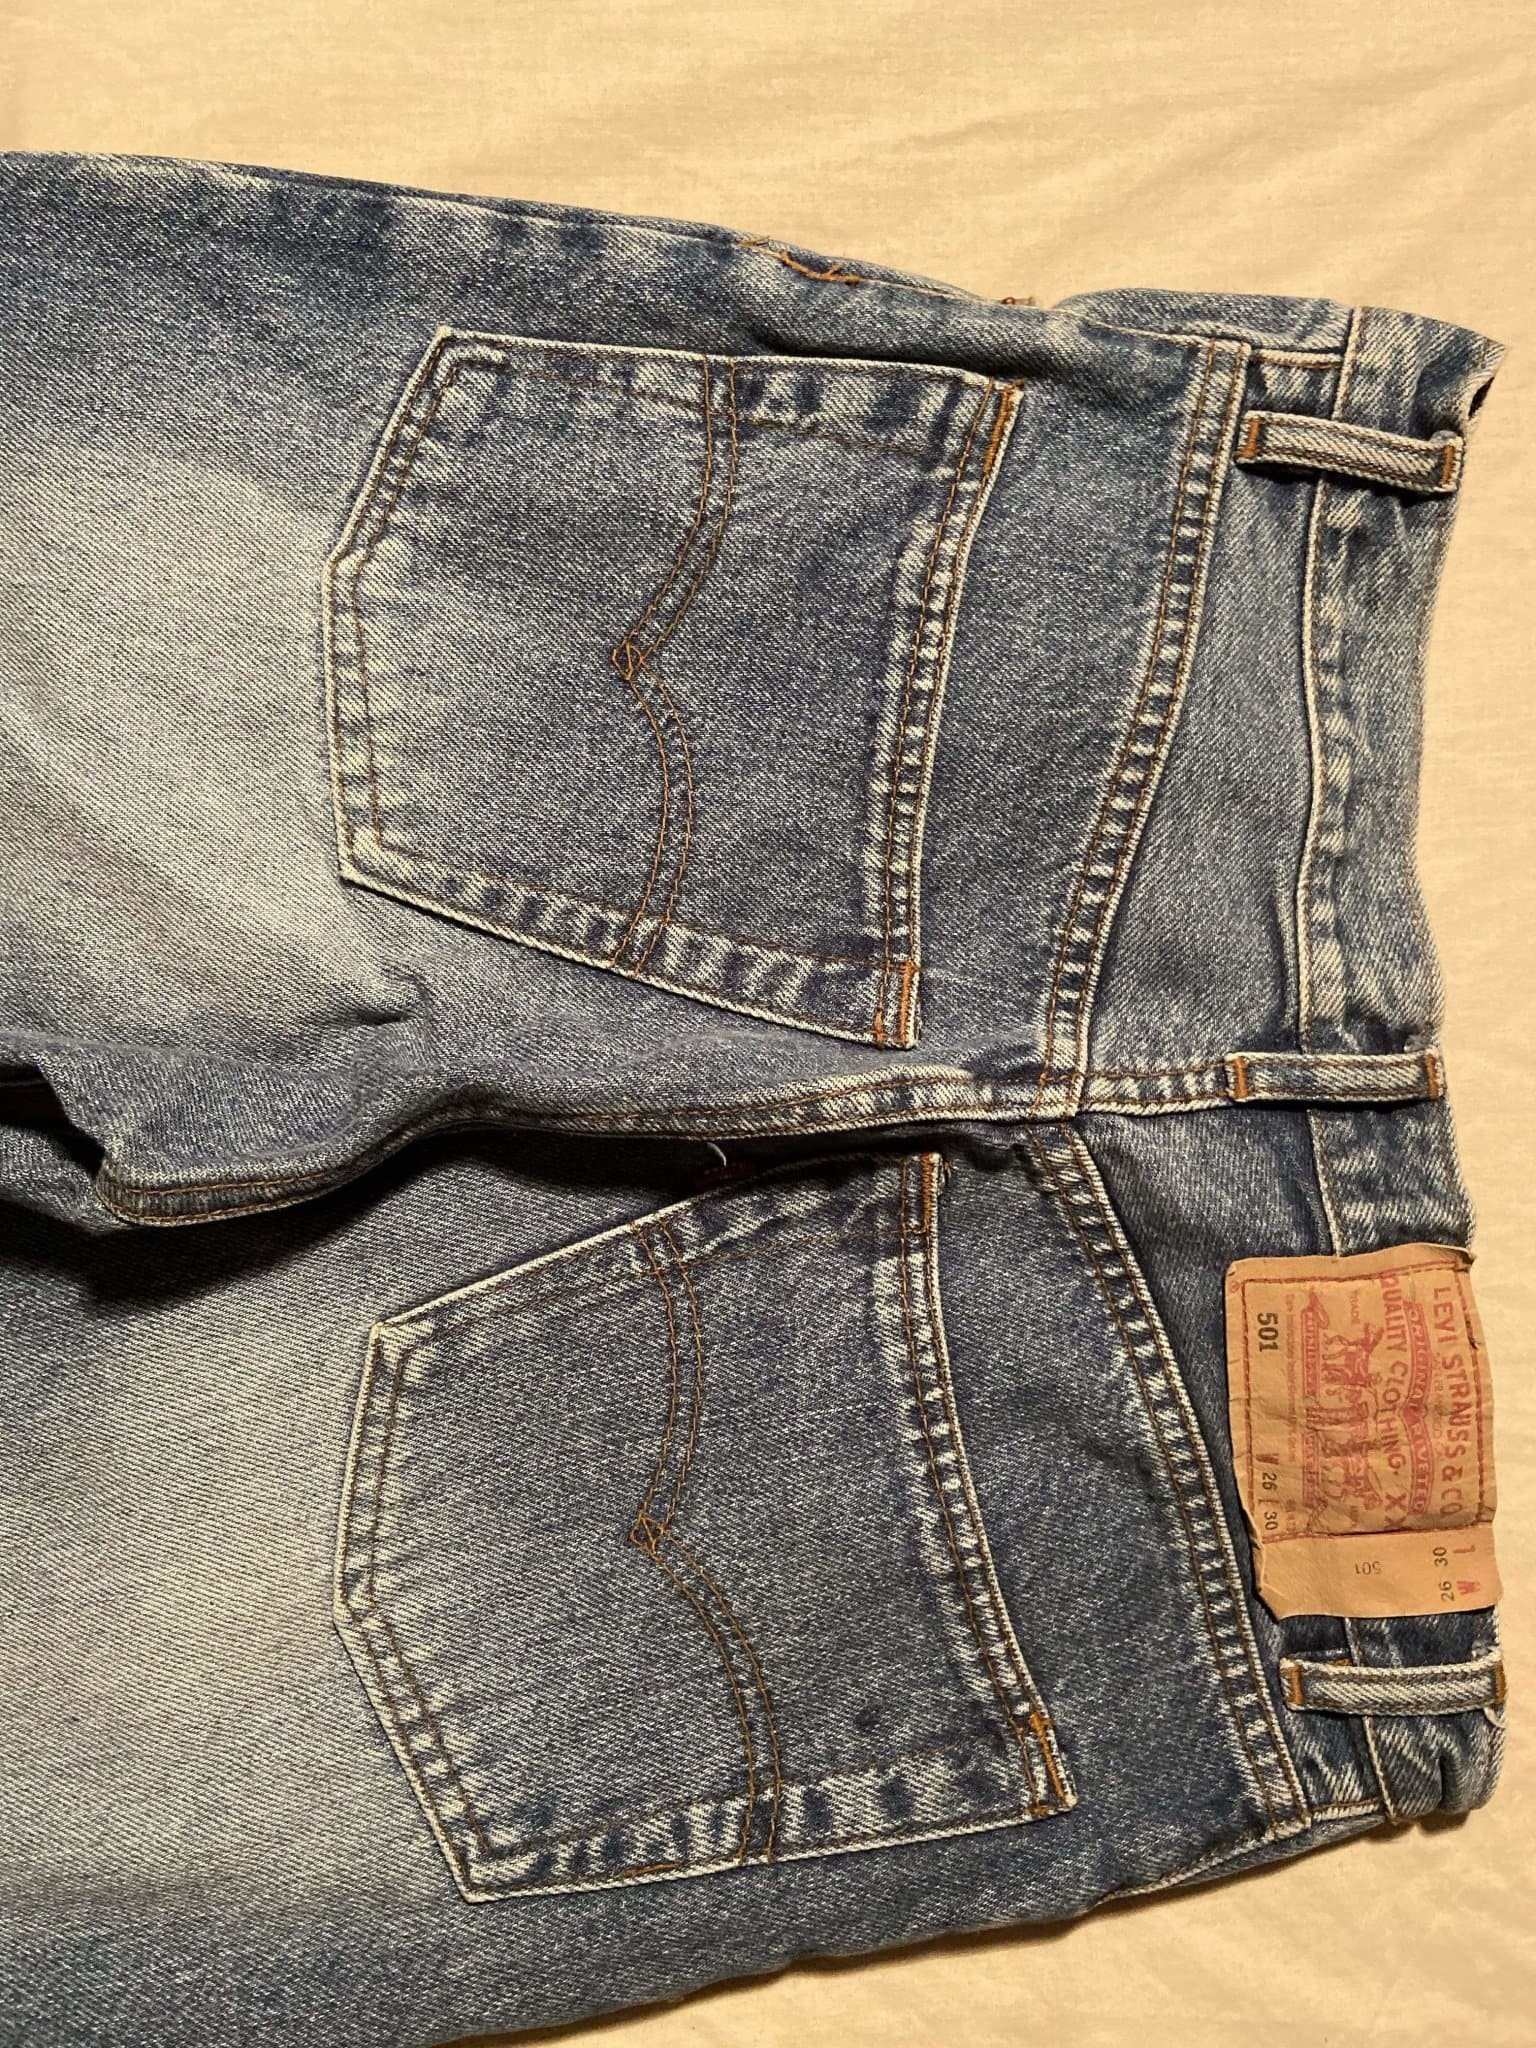 Vintage Grade A Levi's Original 501 Regular Fit Jeans W26 L30 (DE7) - Discounted Deals UK